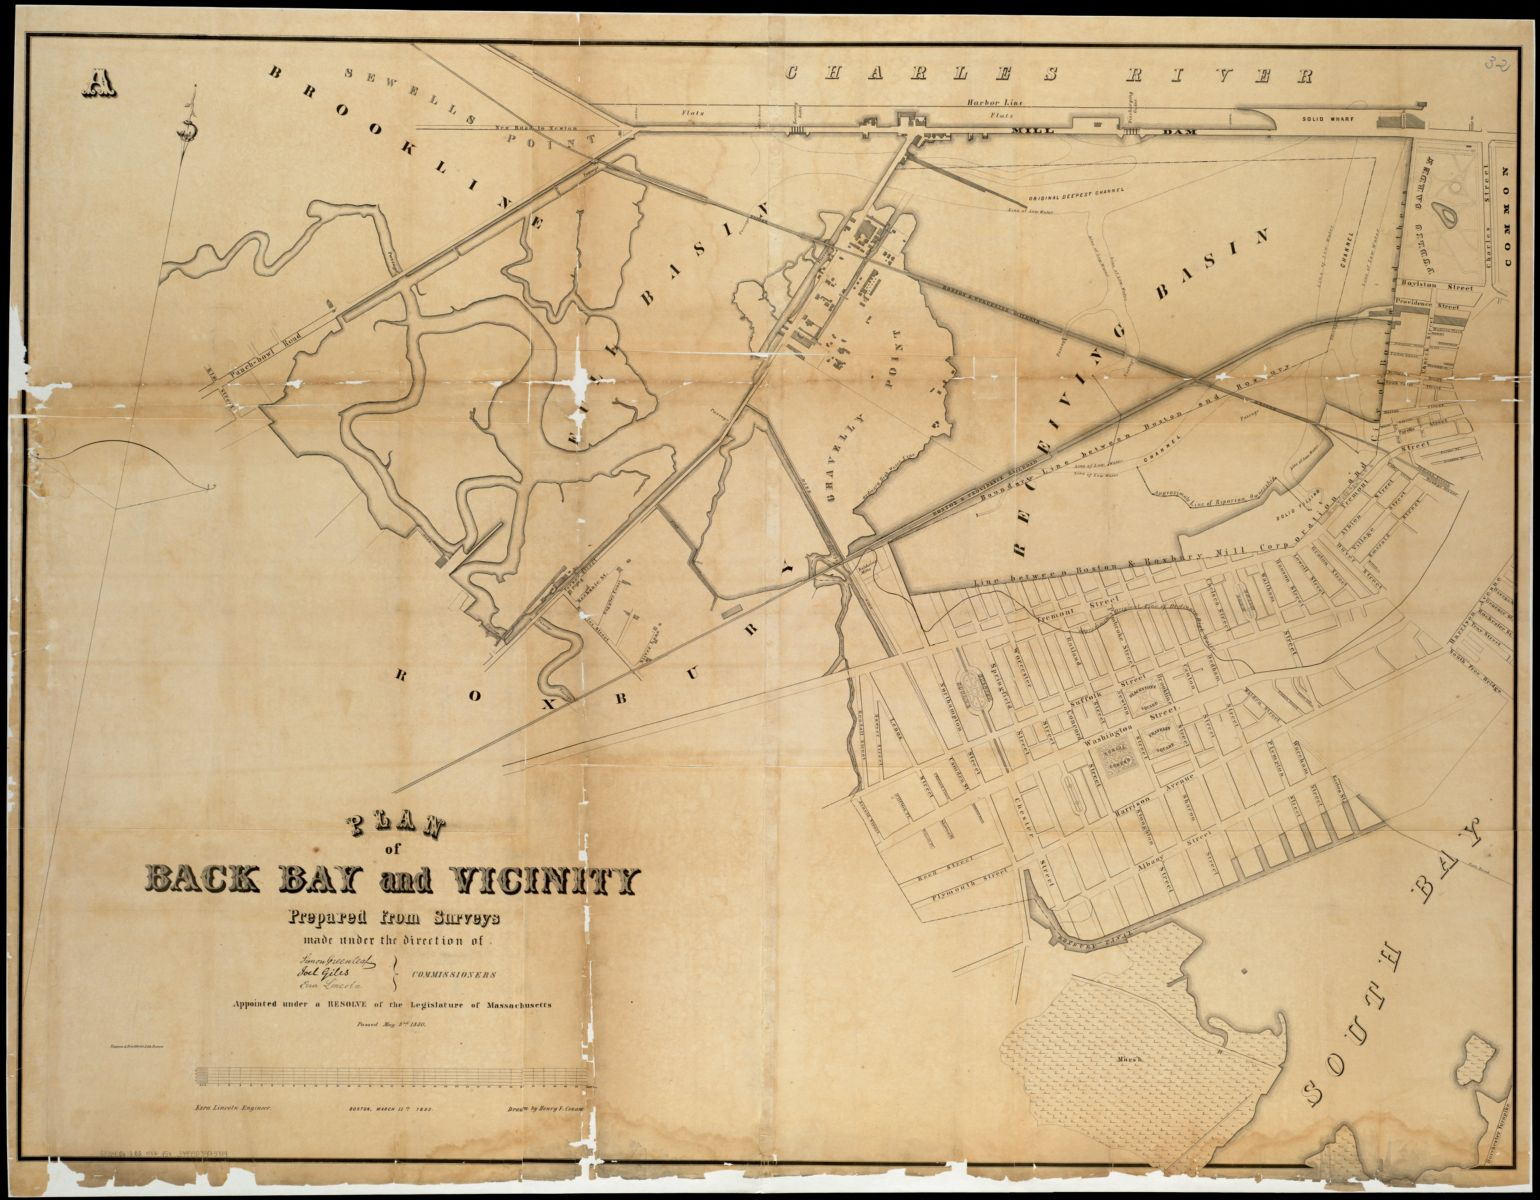 This 1852 plan shows the Back Bay area just before its most dramatic period of land filling